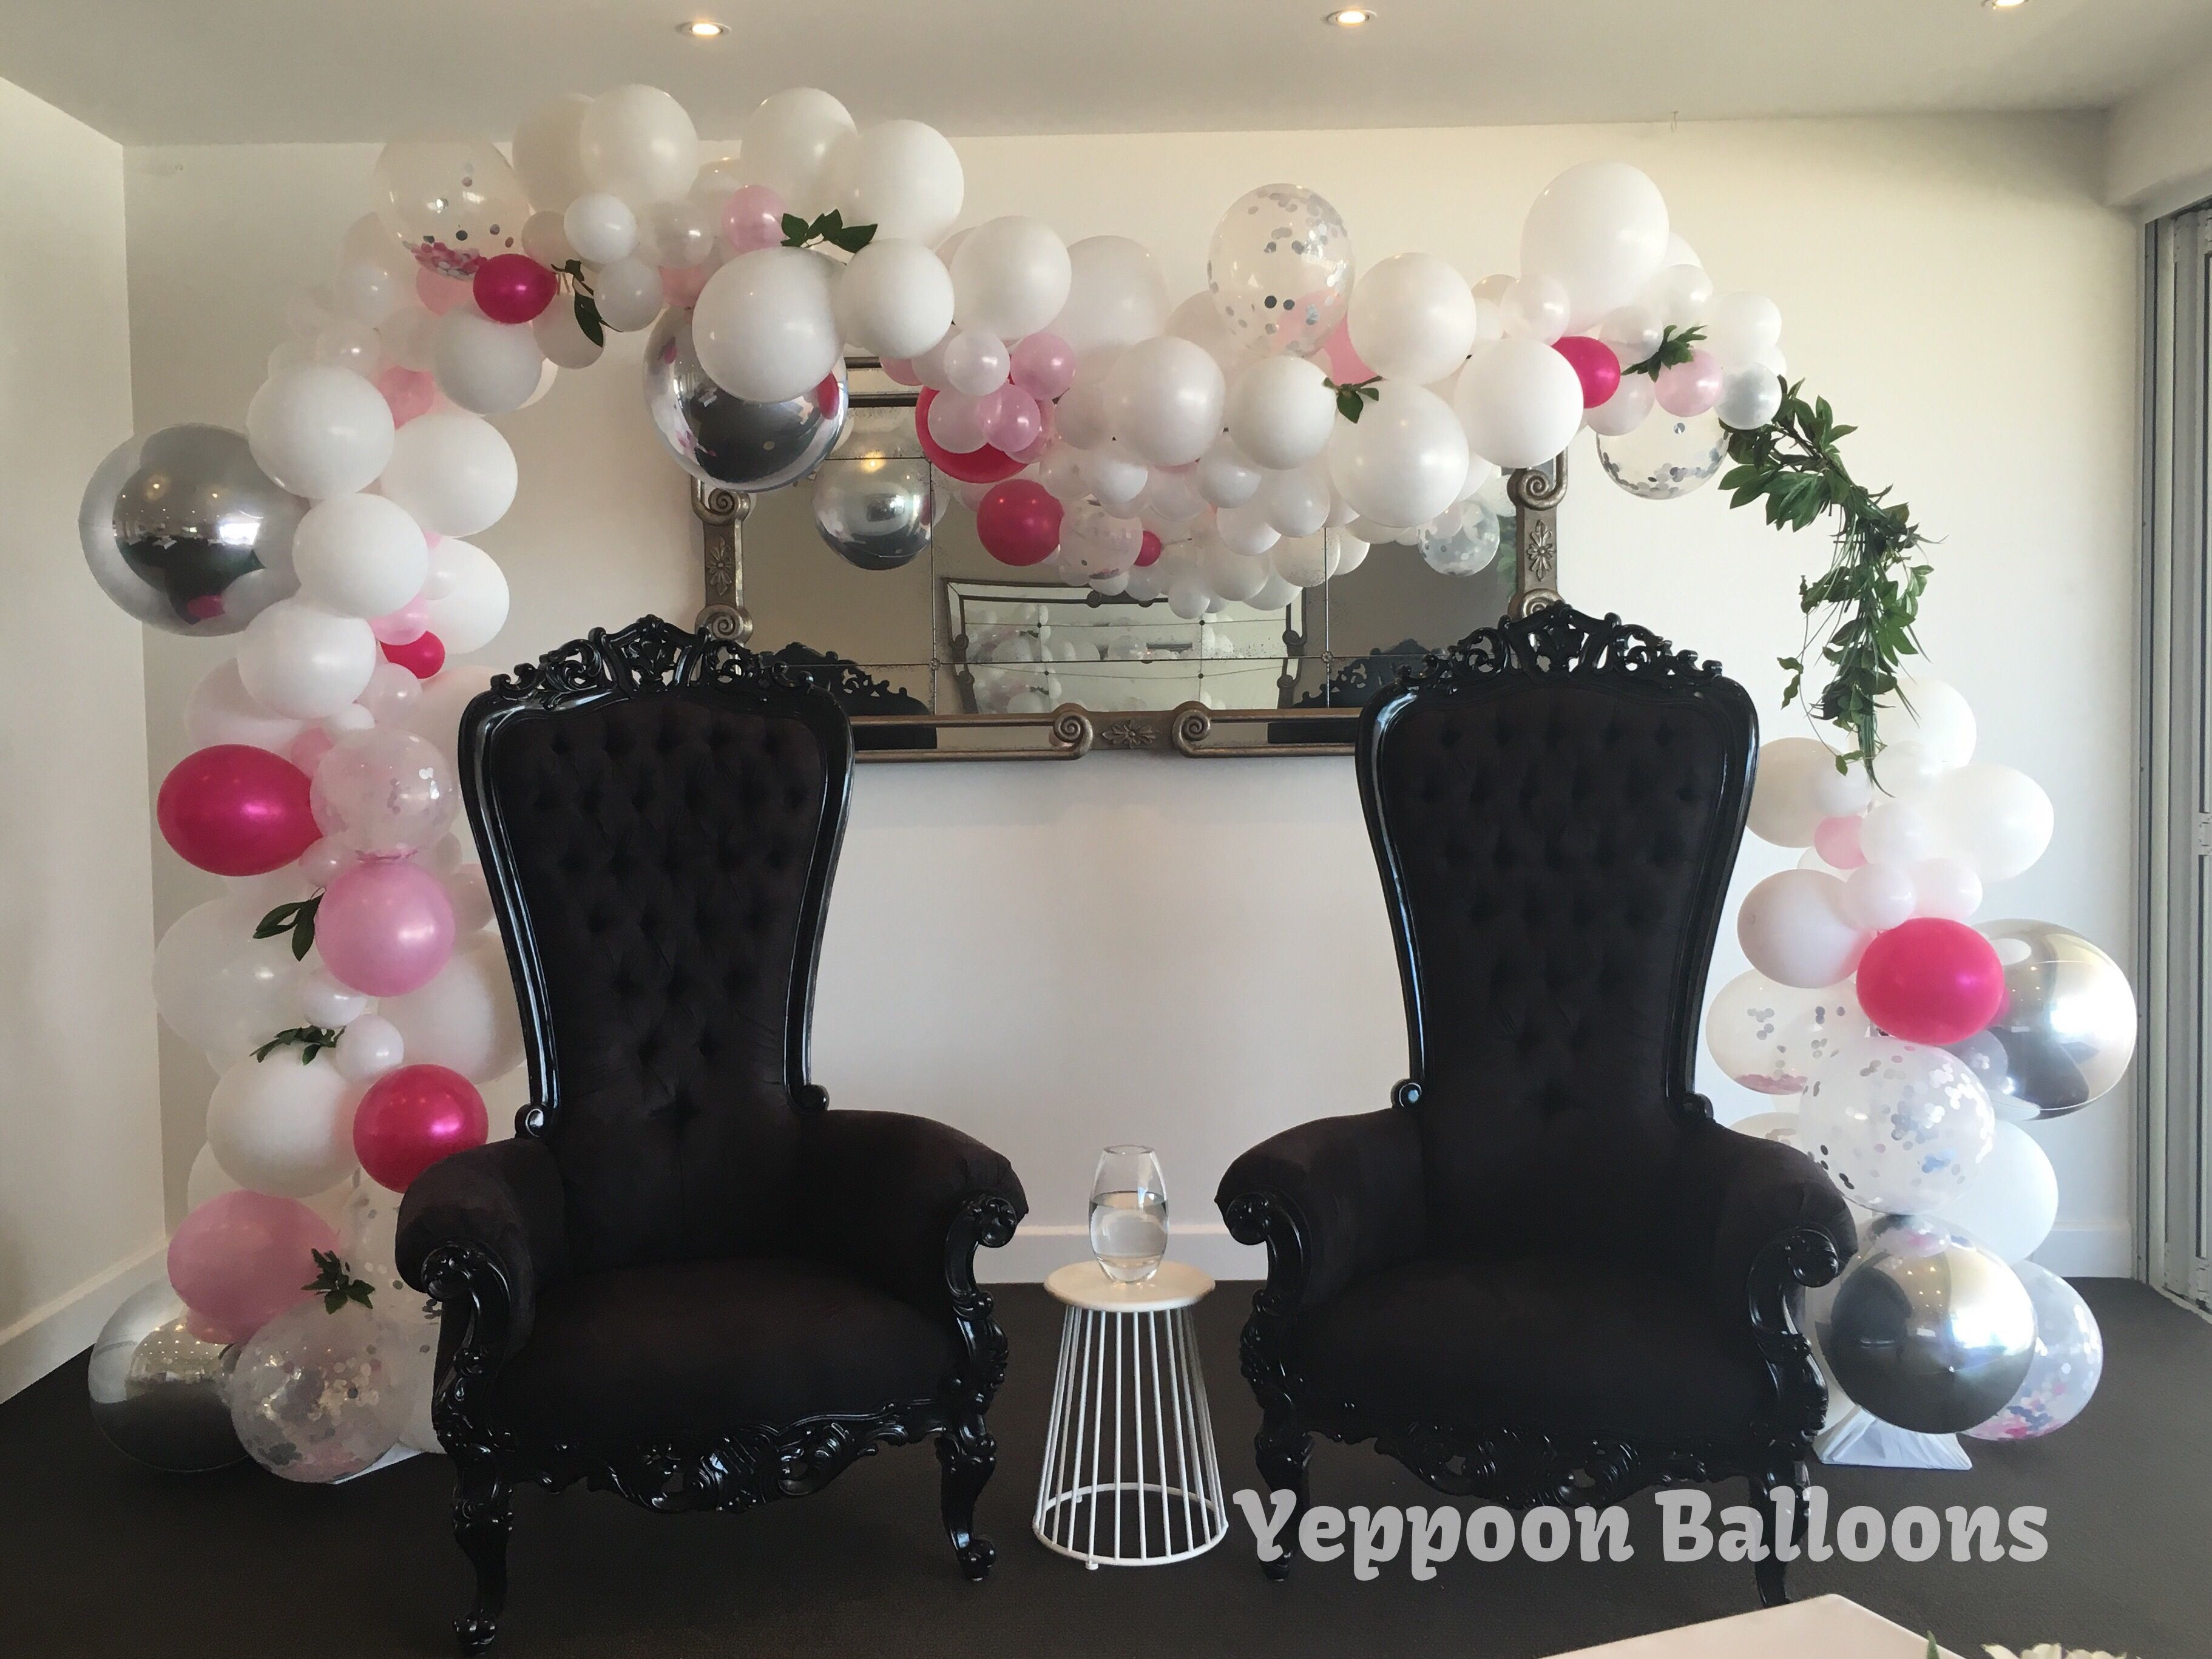 Balloon arch for wedding - Organic Arch Wedding Balloons Yeppoon Balloons